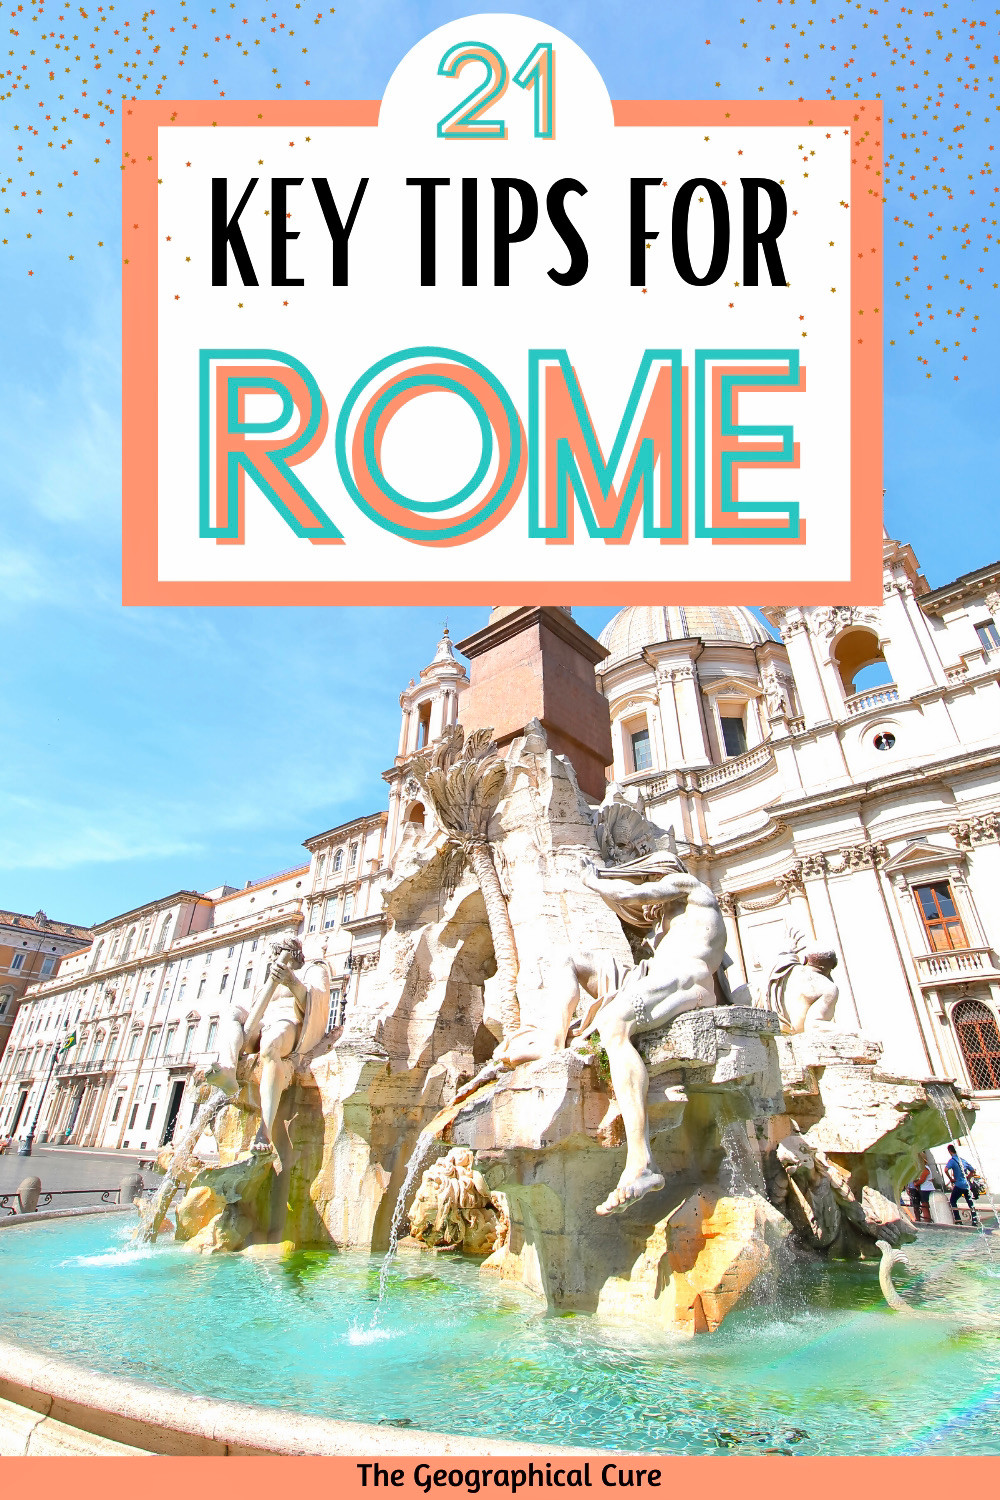 ultimate guide to must know tips for seeing Rome's best attractions and hidden gems